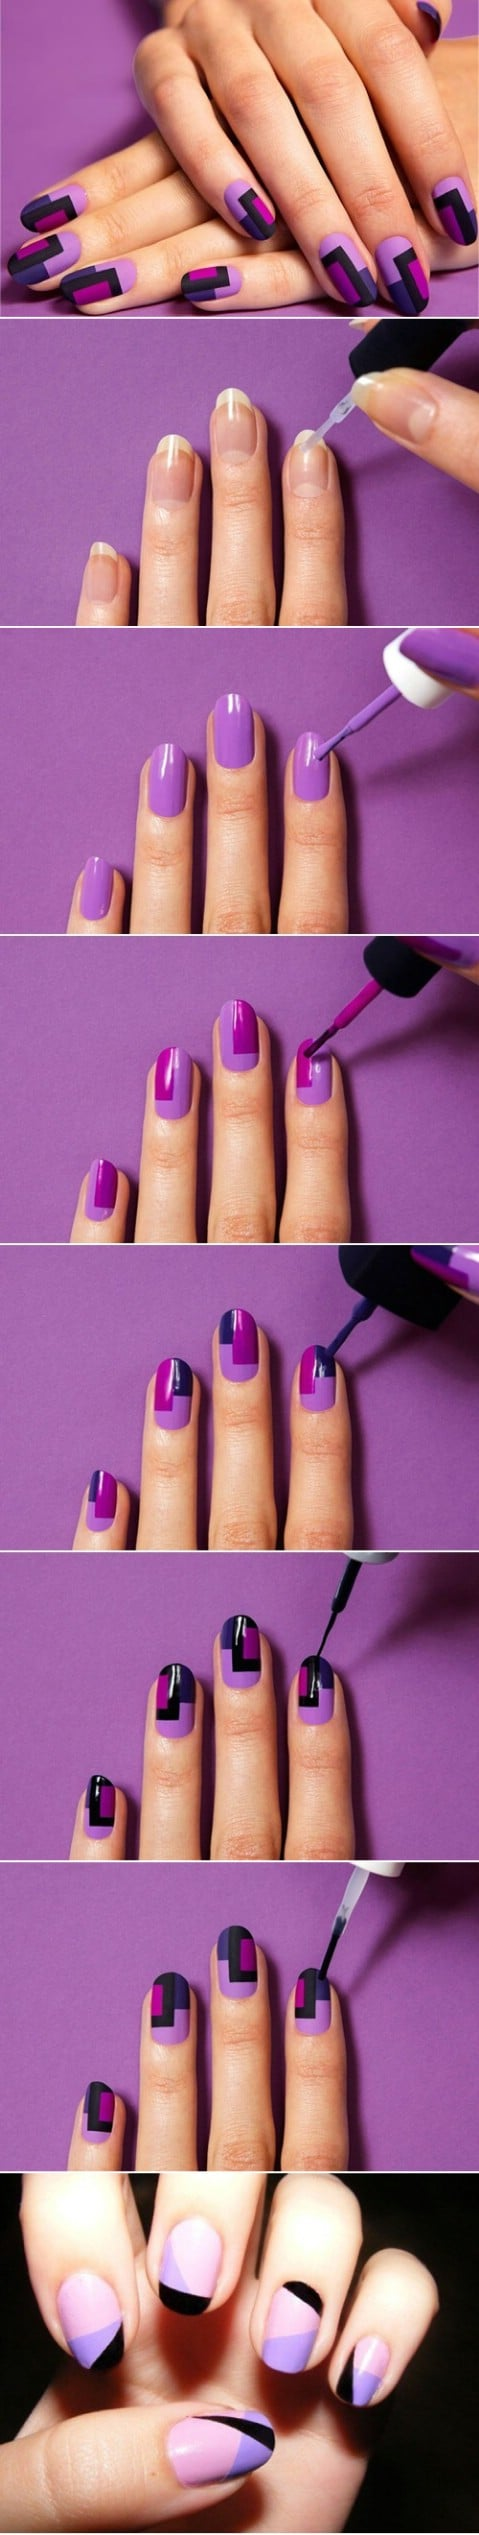 Fabulous geometric nail design